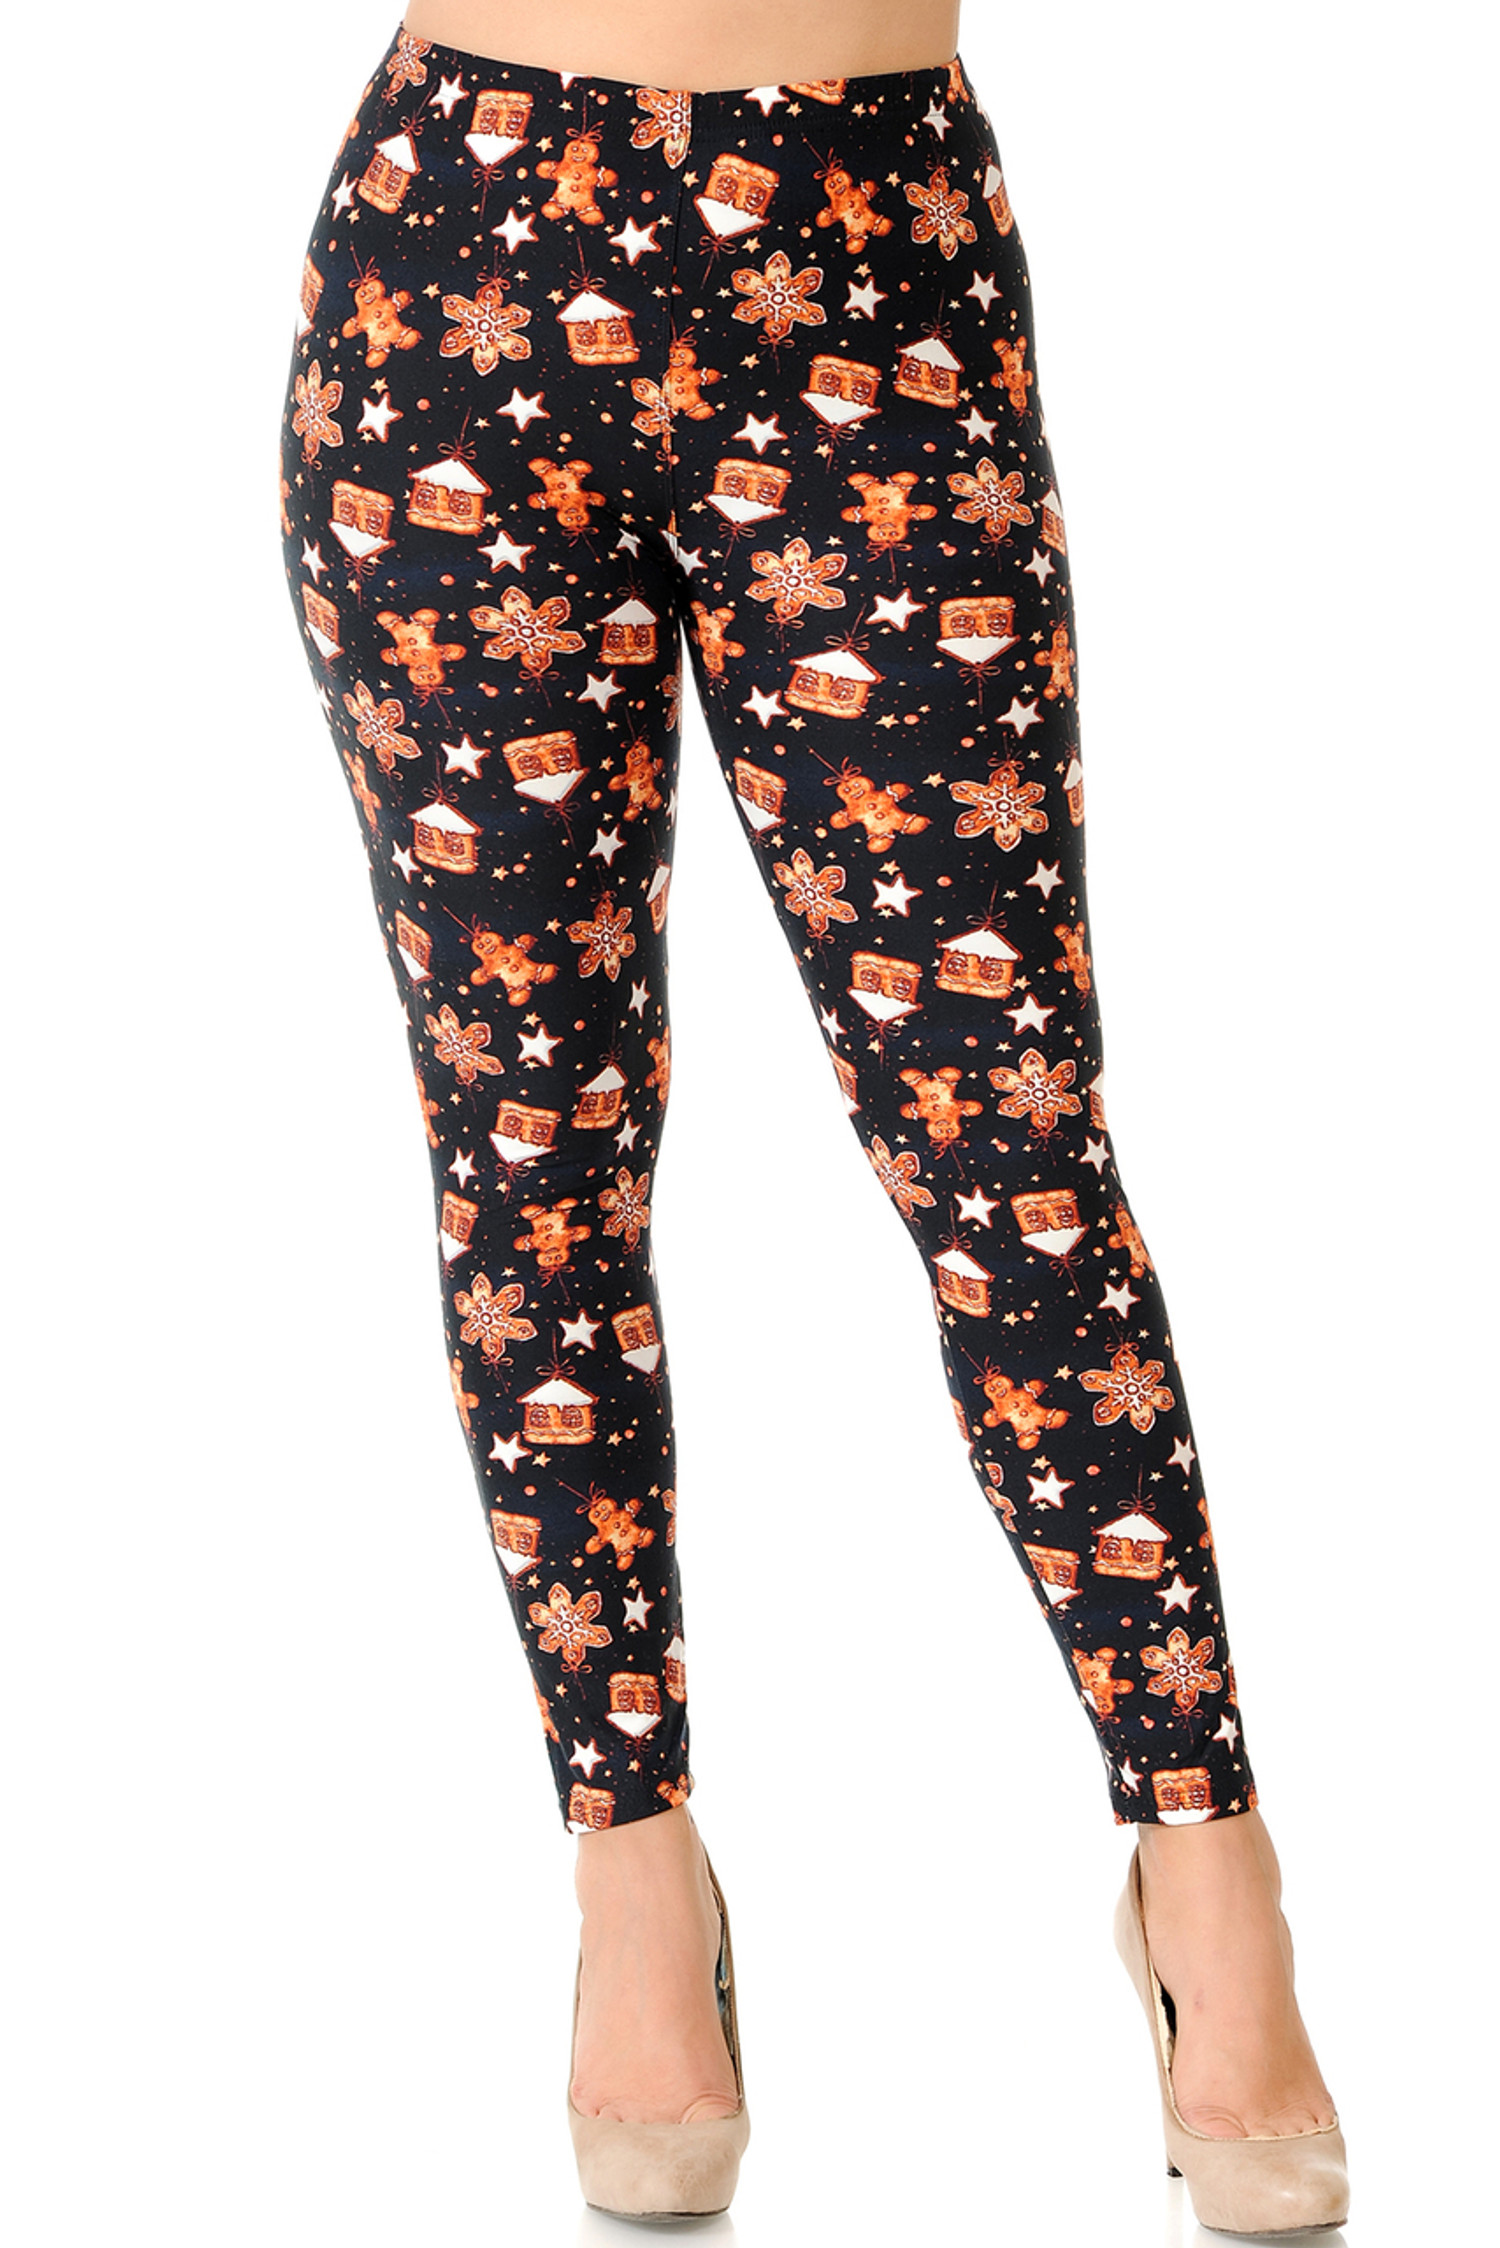 Brushed Gingerbread Christmas Extra Plus Size Leggings - 3X-5X